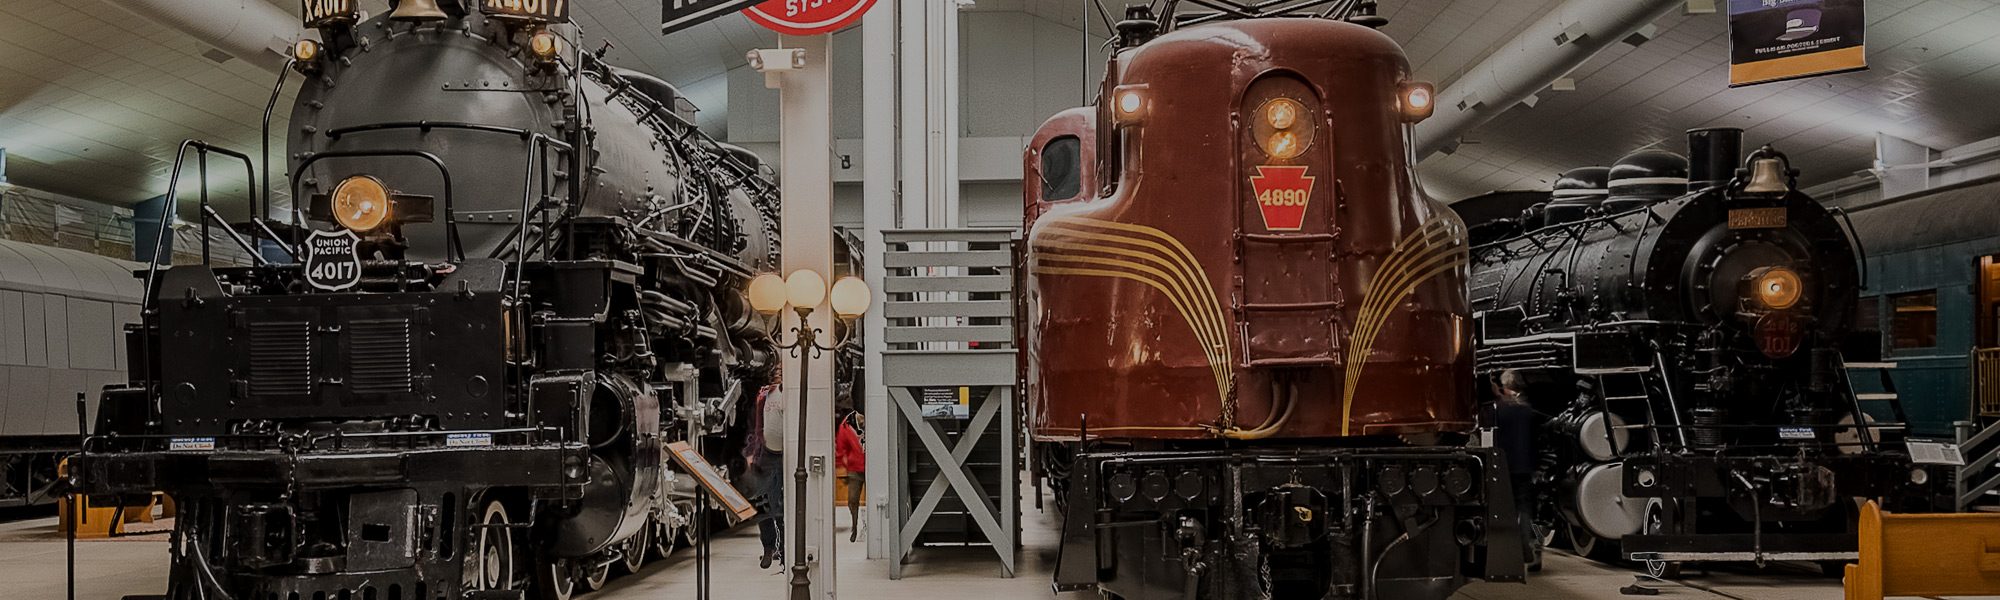 "Founded in 1956, the National Railroad Museum boasts an exceptional collection that includes many historic locomotives. Shown here are Union Pacific Big Boy No. 4017 (the ""Big Boys"" are the world's largest steam locomotives), PRR/Amtrak 4890, and U.S. Army 2-8-0 No. 101, used in Korea. The PRR's GG1 class of electric locomotive is one of the most iconic (steam, diesel, or electric) of all time. Sporting a beautiful streamlined design, the GG1s reached speeds of over 100 mph and ran for nearly 50 years after they first entered service during the mid-1930s. Photo courtesy National Railroad Museum."